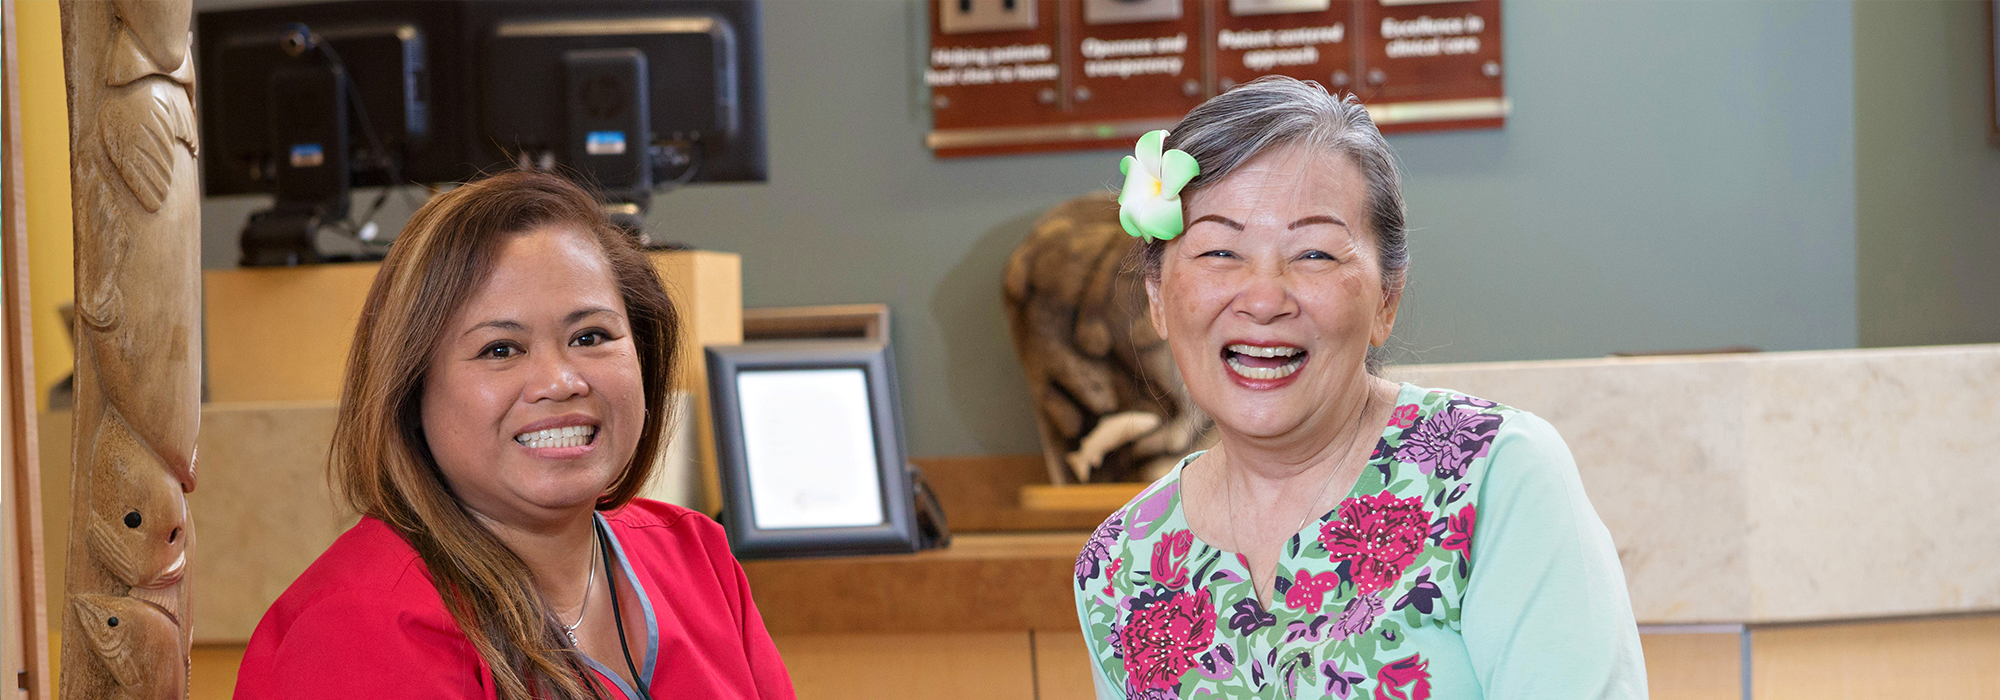 Your First Visit - Peninsula Radiation Oncology Center